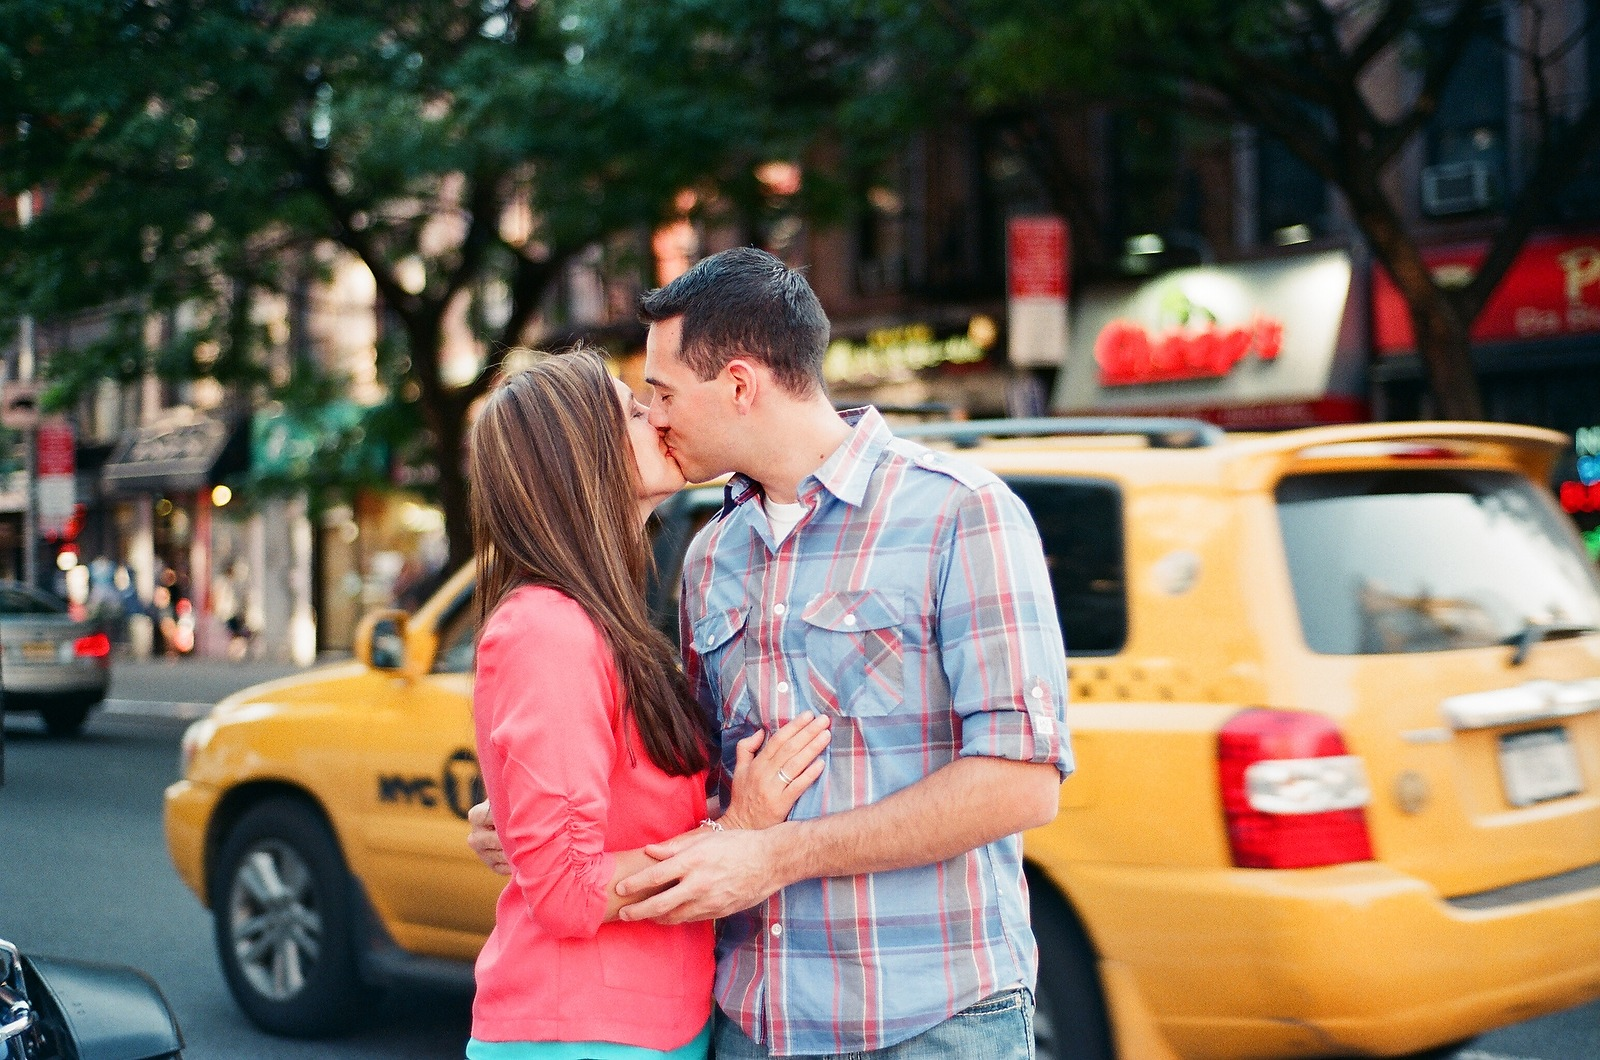 couple kissing with yellow cab in background